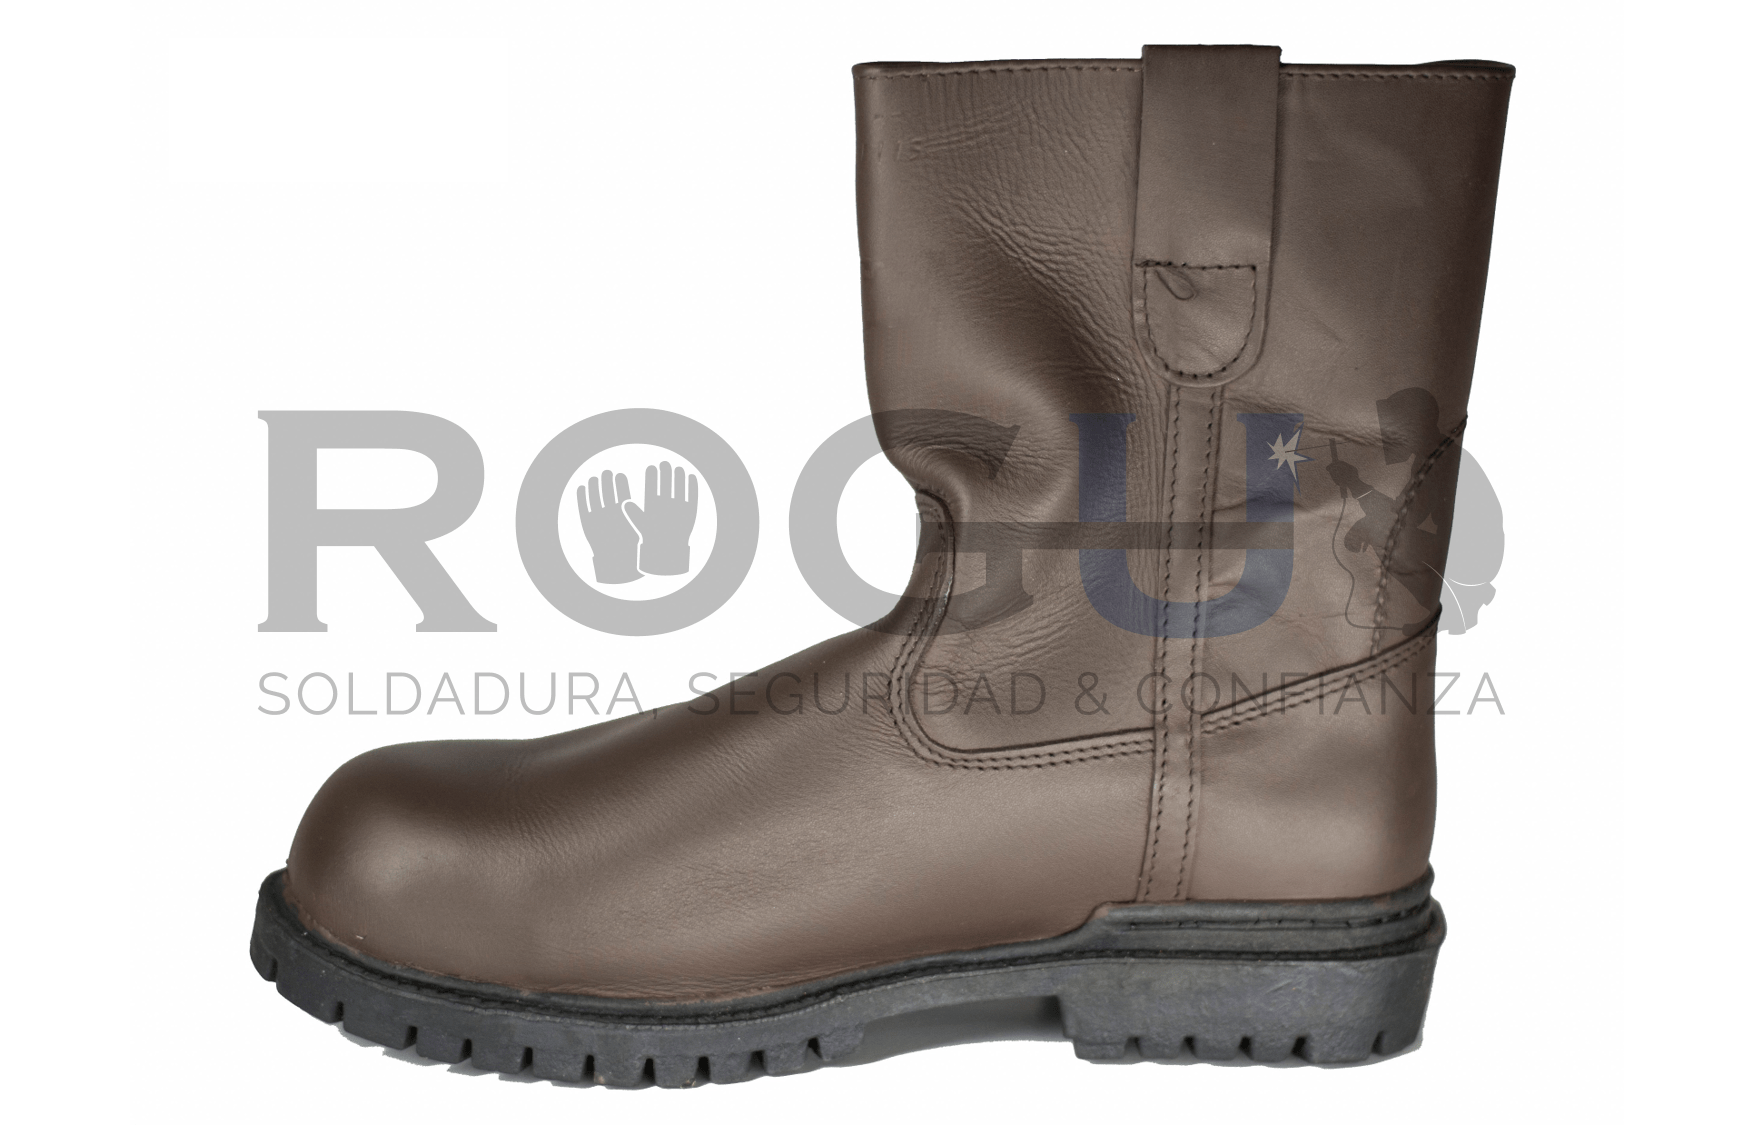 Bota Tipo Ropper Cafe 1